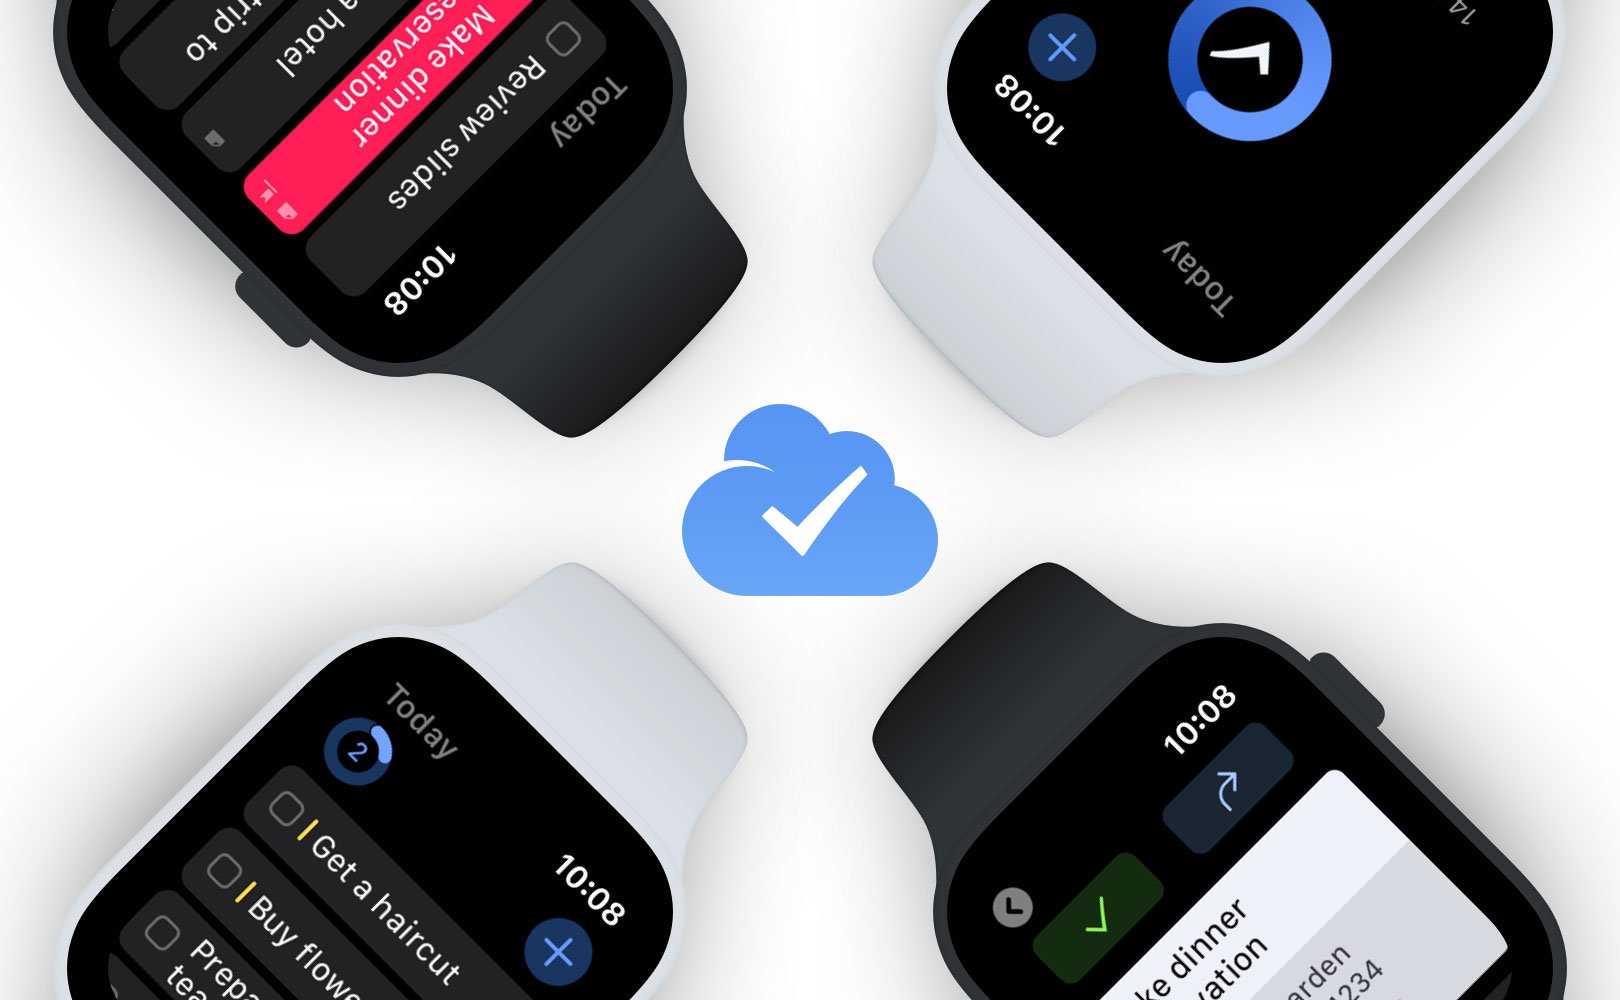 Things for Apple Watch now syncs directly with Things Cloud